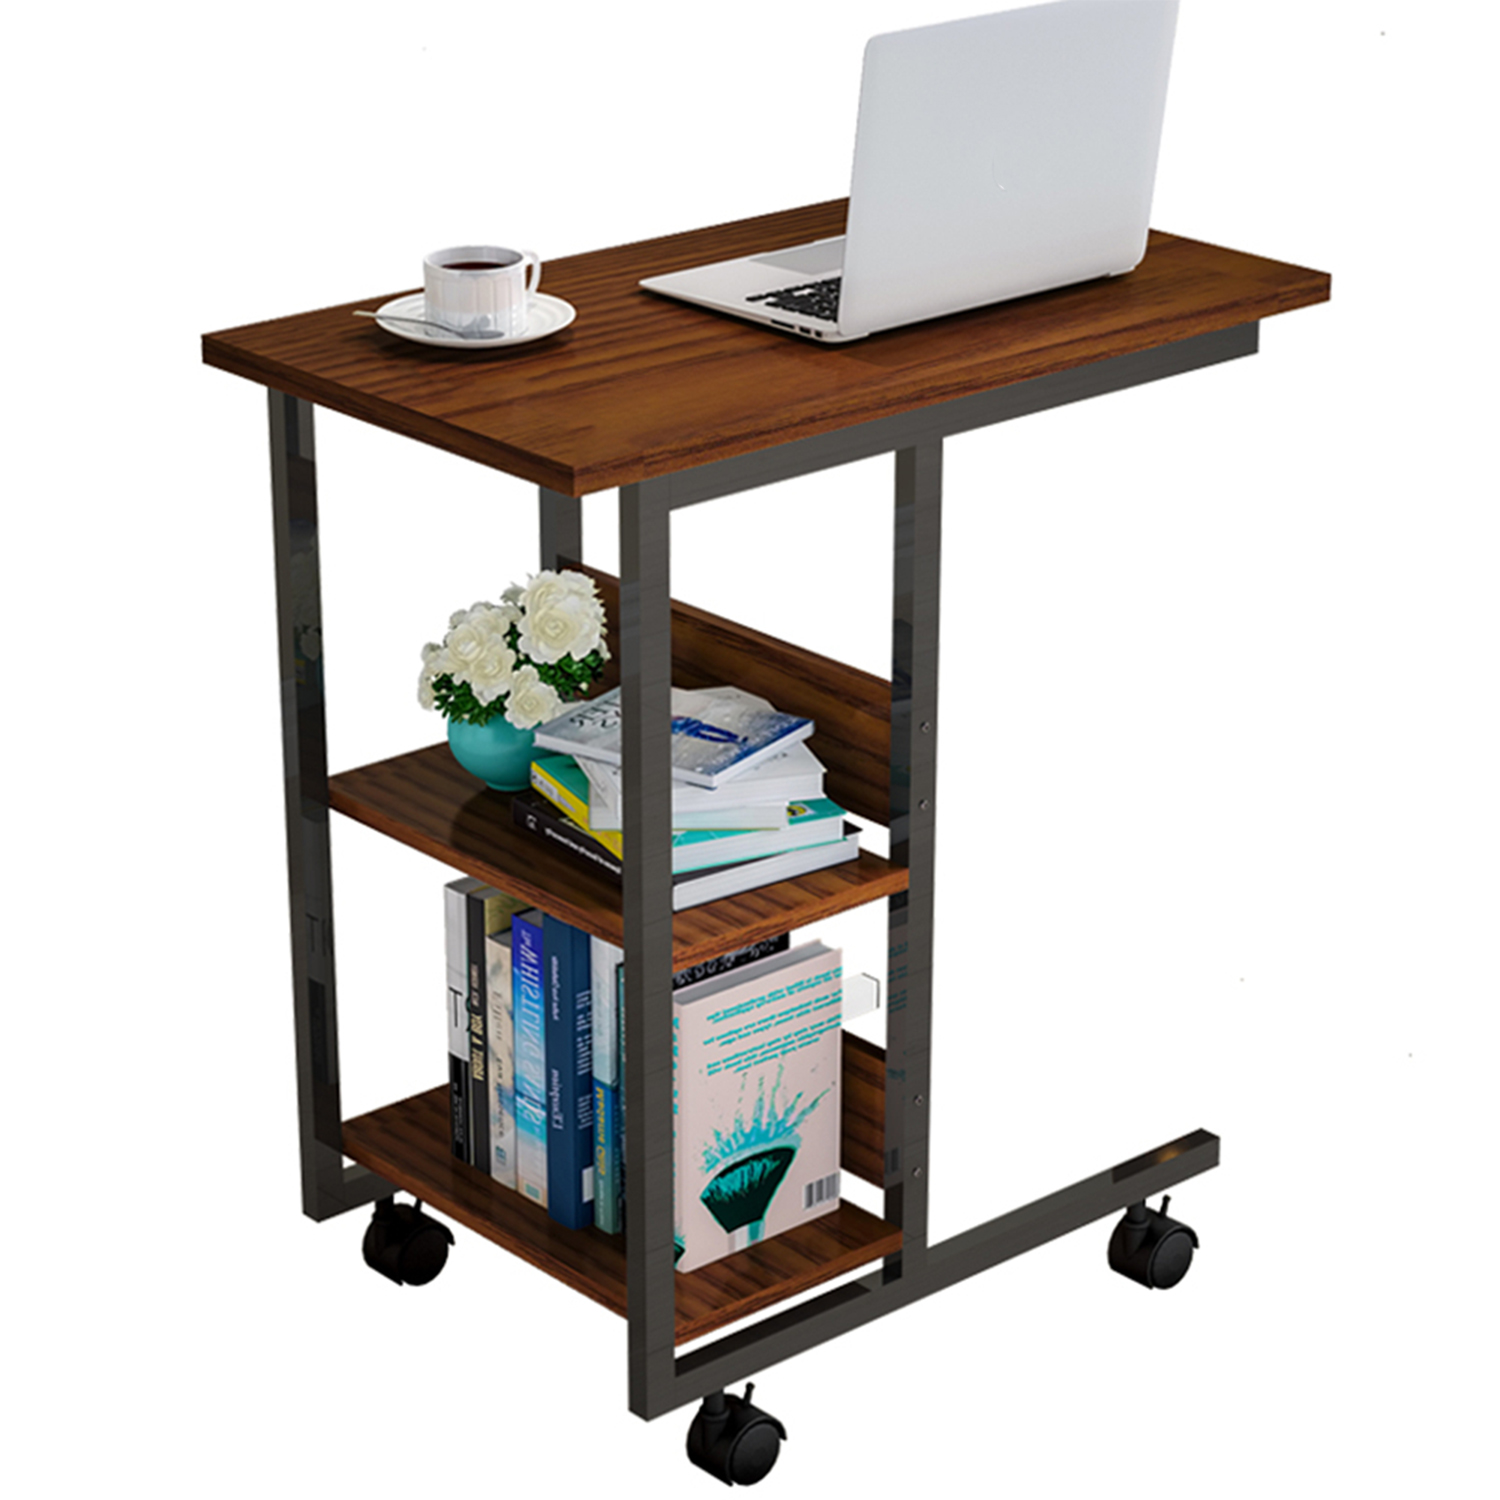 simple side table for sofa bed couch c shaped table desk rolling casters with brakes moveable coffee side table 3 tier storage